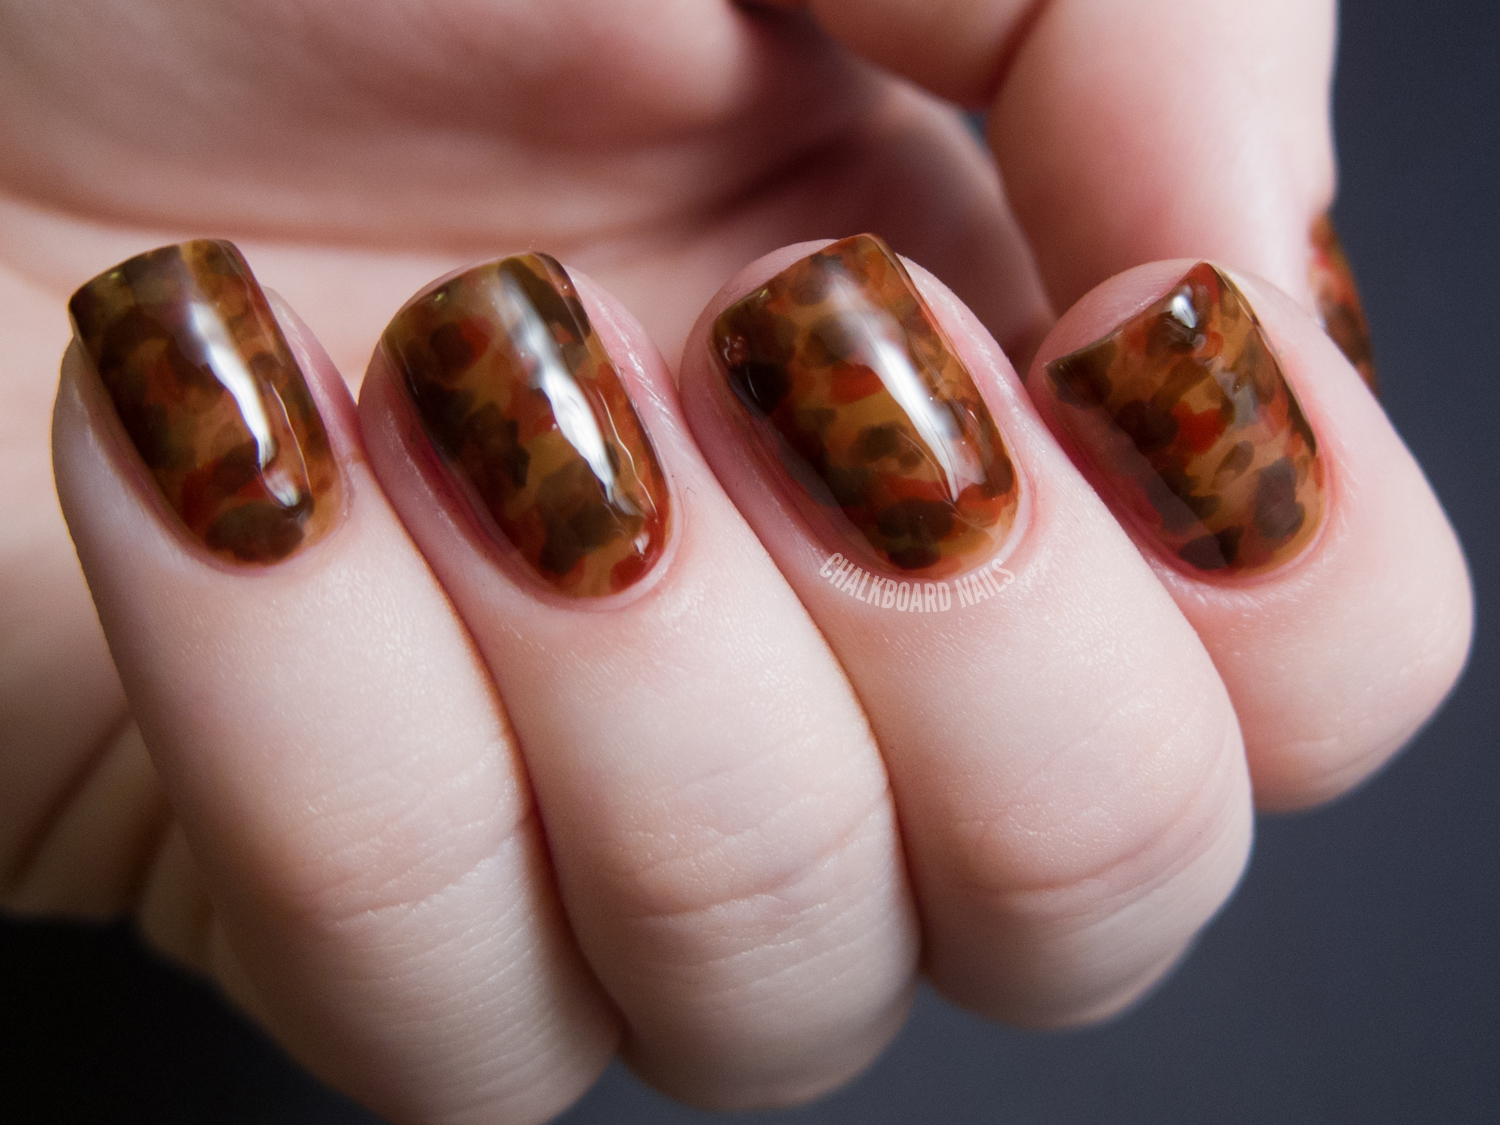 Get The Look Tortoiseshell Nails Ft Elevation Polish